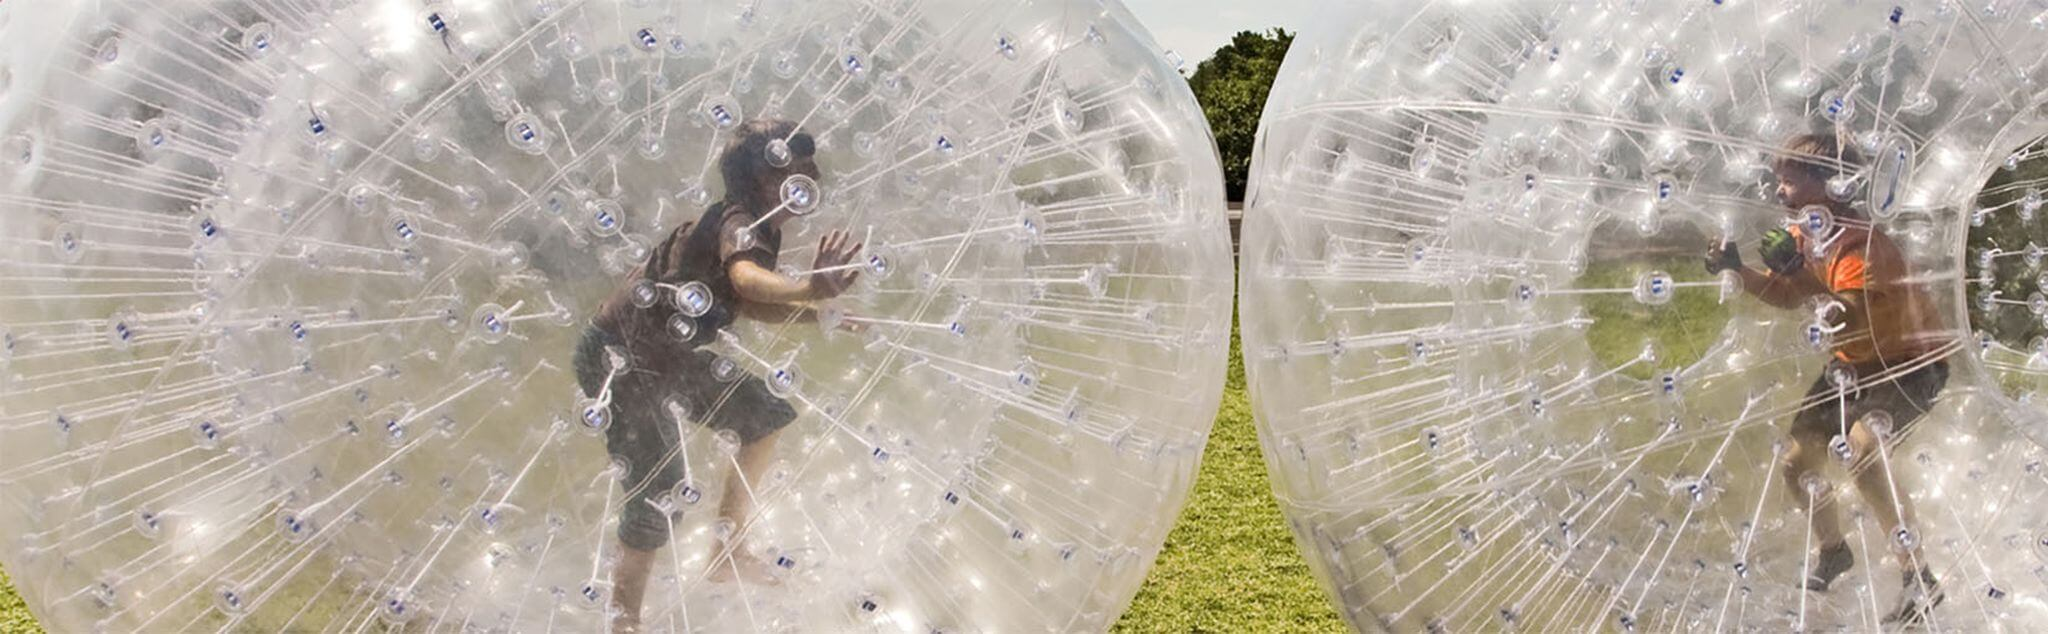 Bubble Football a Málaga